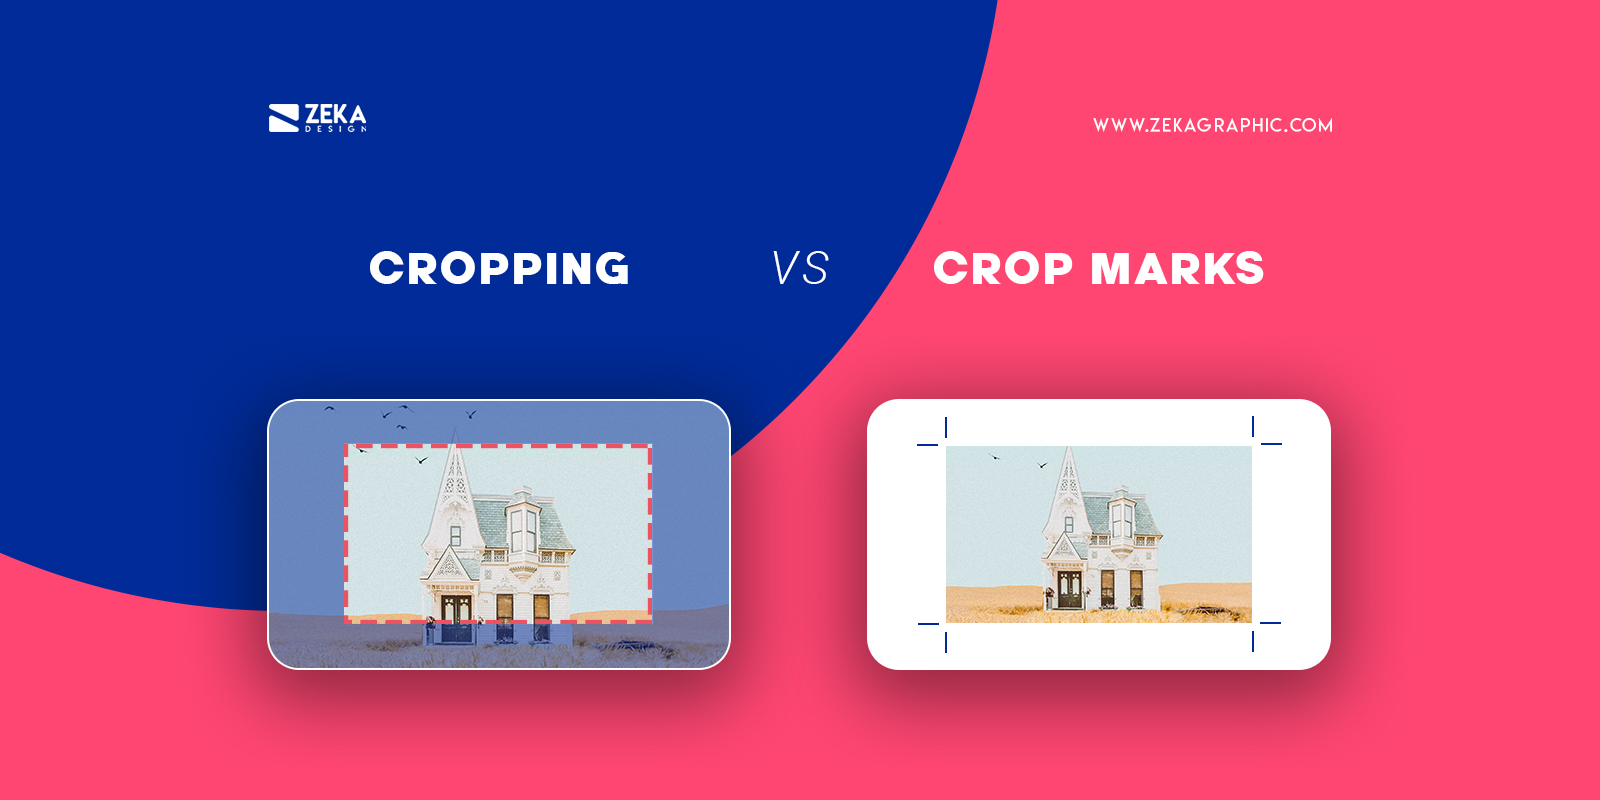 Cropping vs Crop marks in graphic design explained